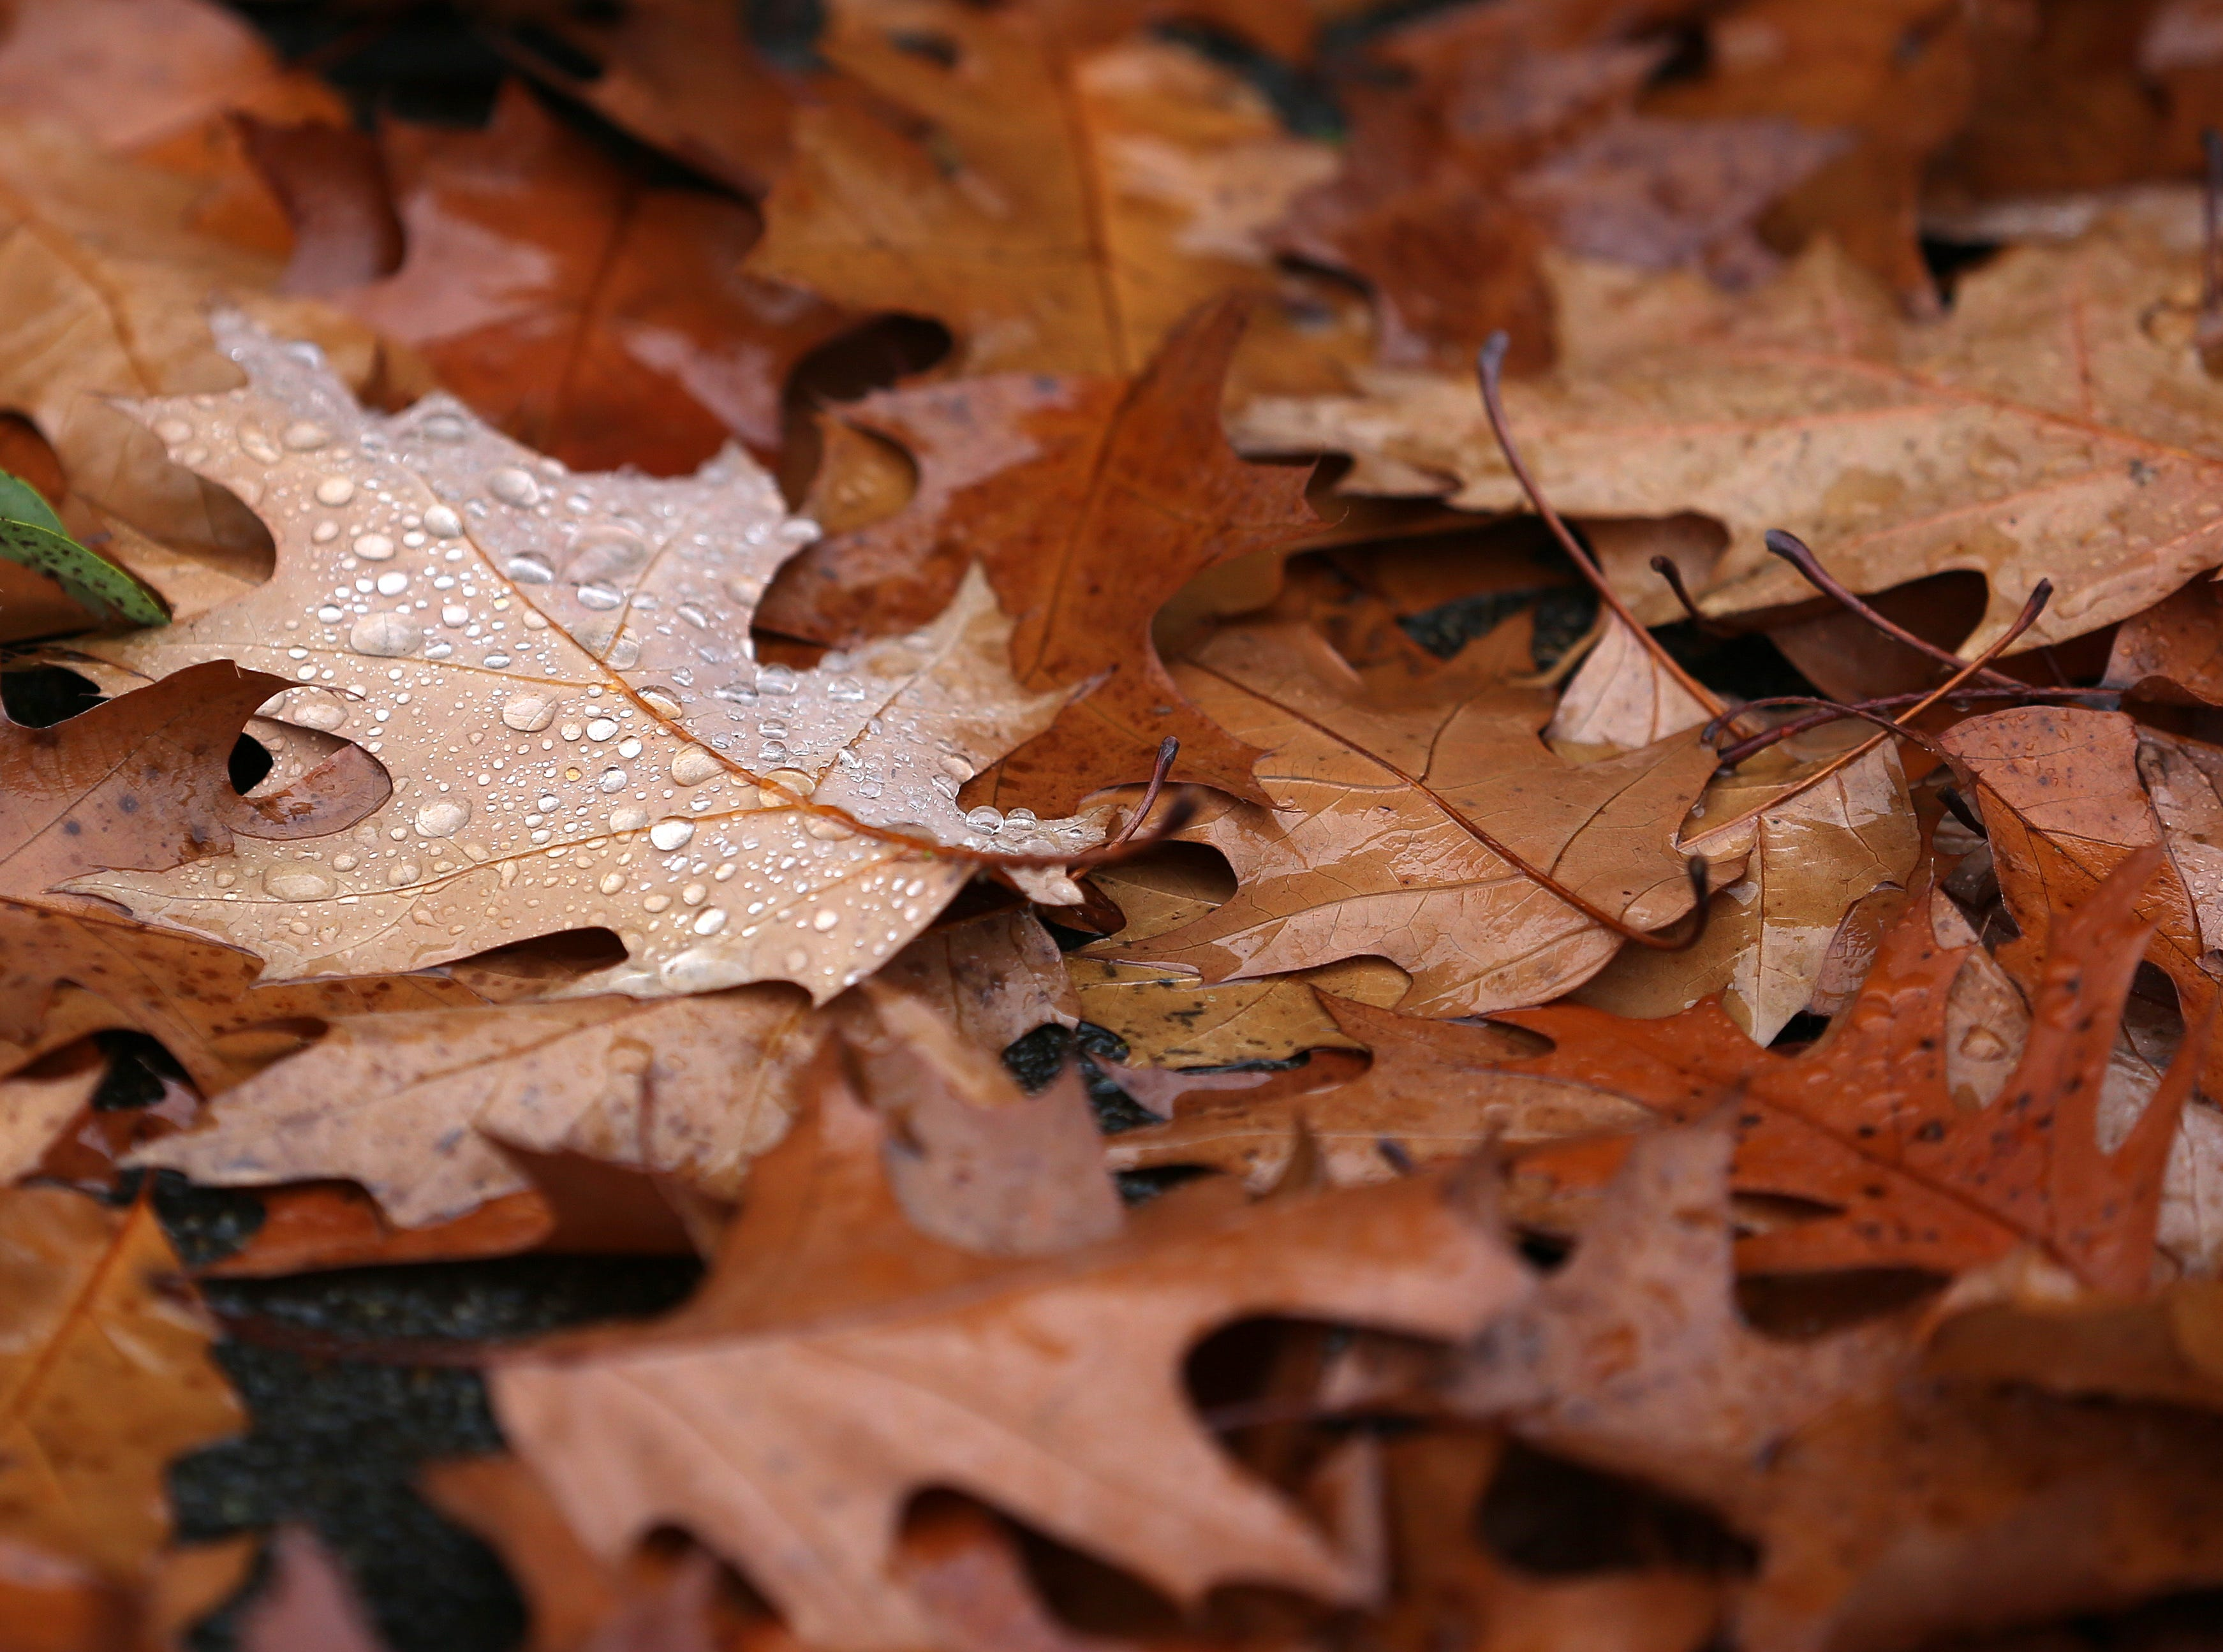 Residents can drop off bagged leaves at two events coming up in Salem.